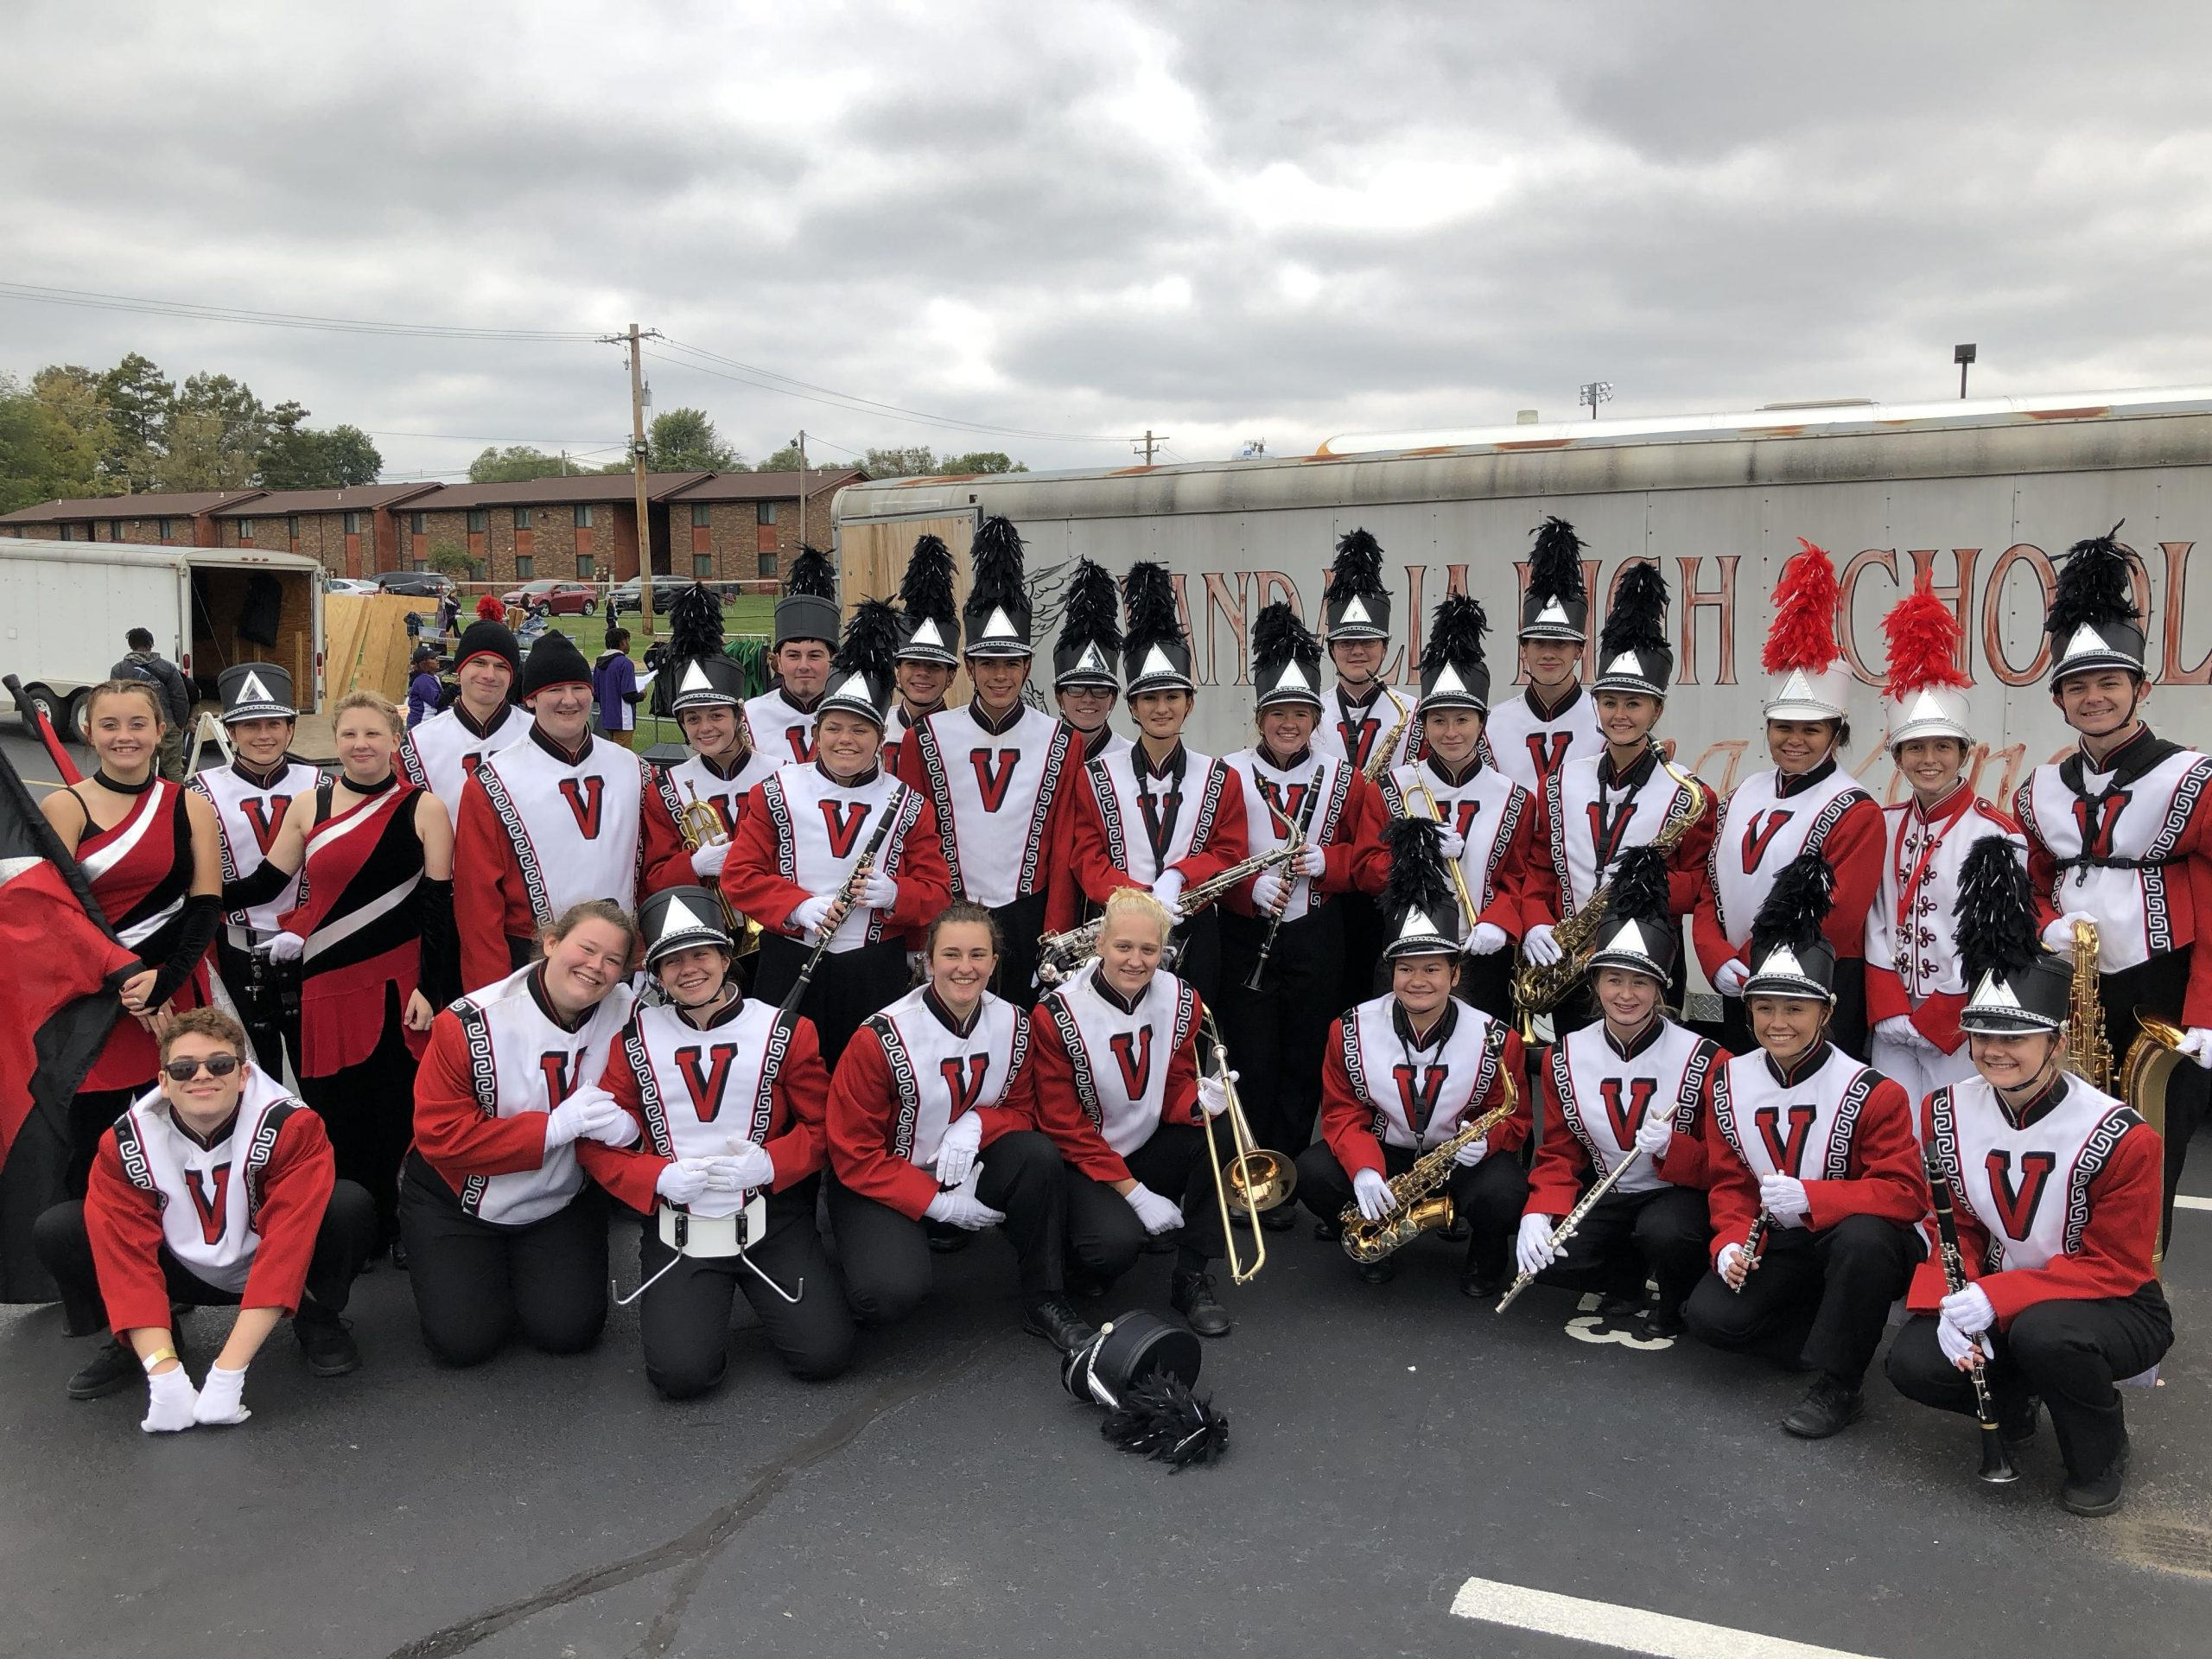 VCHS Marching Vandals with strong showing at Oblong Spooktackular Event